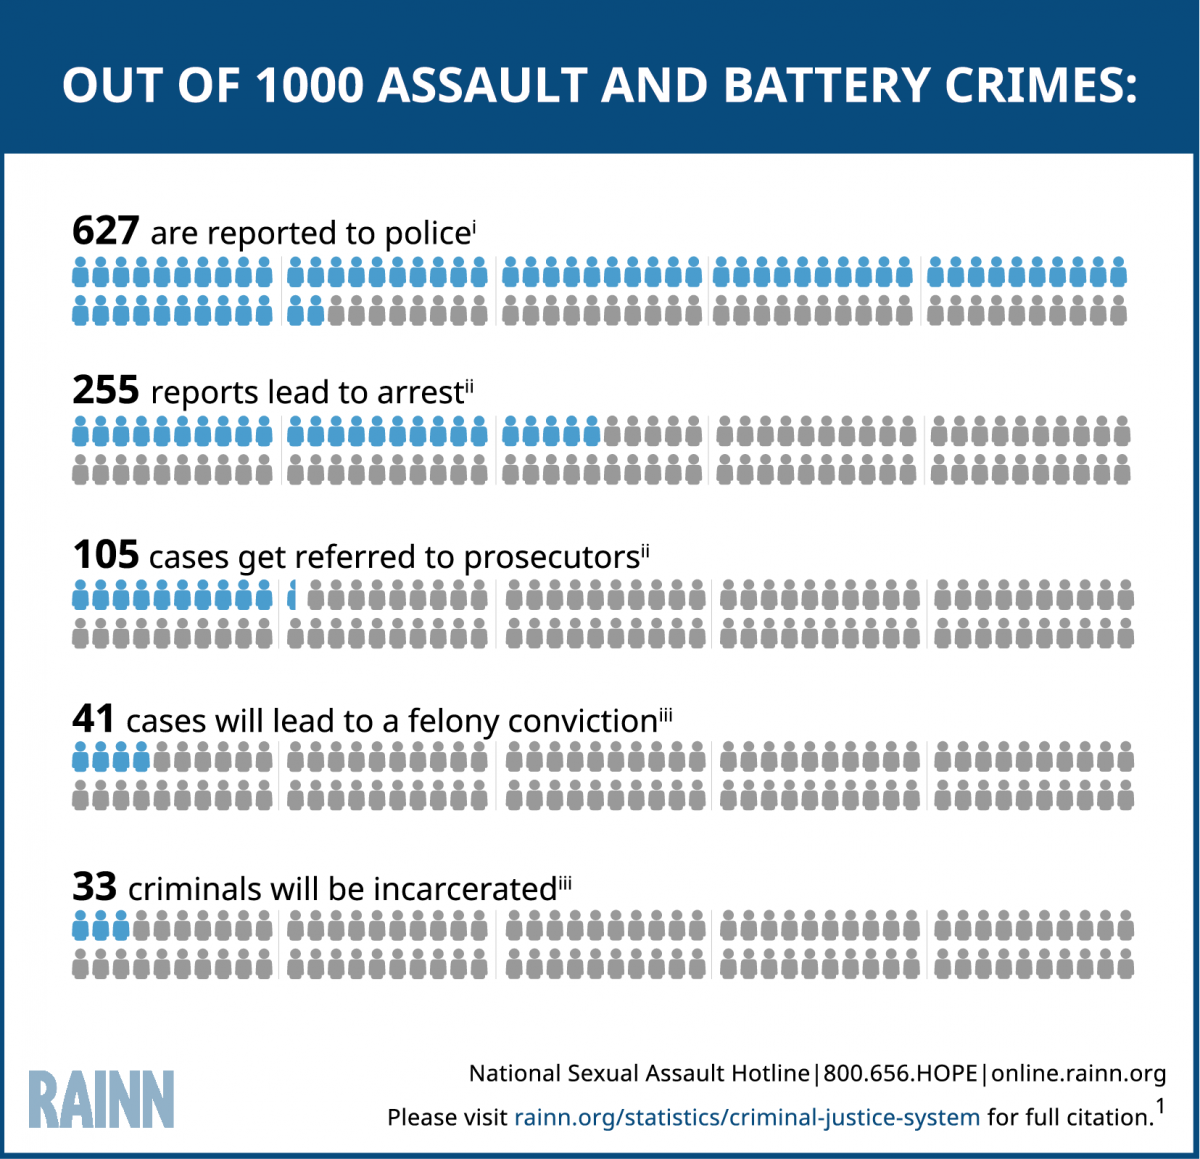 Graphic explaining the number of perpetrators of assault and battery that will serve jail or prison time. The graphic visually contrasts the much lower jail and prison rates for perpetrators of rape. Out of every 1,000 assault and battery crimes, 627 are reported to police, 255 reports lead to arrest, 105 cases get referred to prosecutors, 41 cases will lead to a felony conviction, 33 perpetrators of these crimes will be incarcerated.